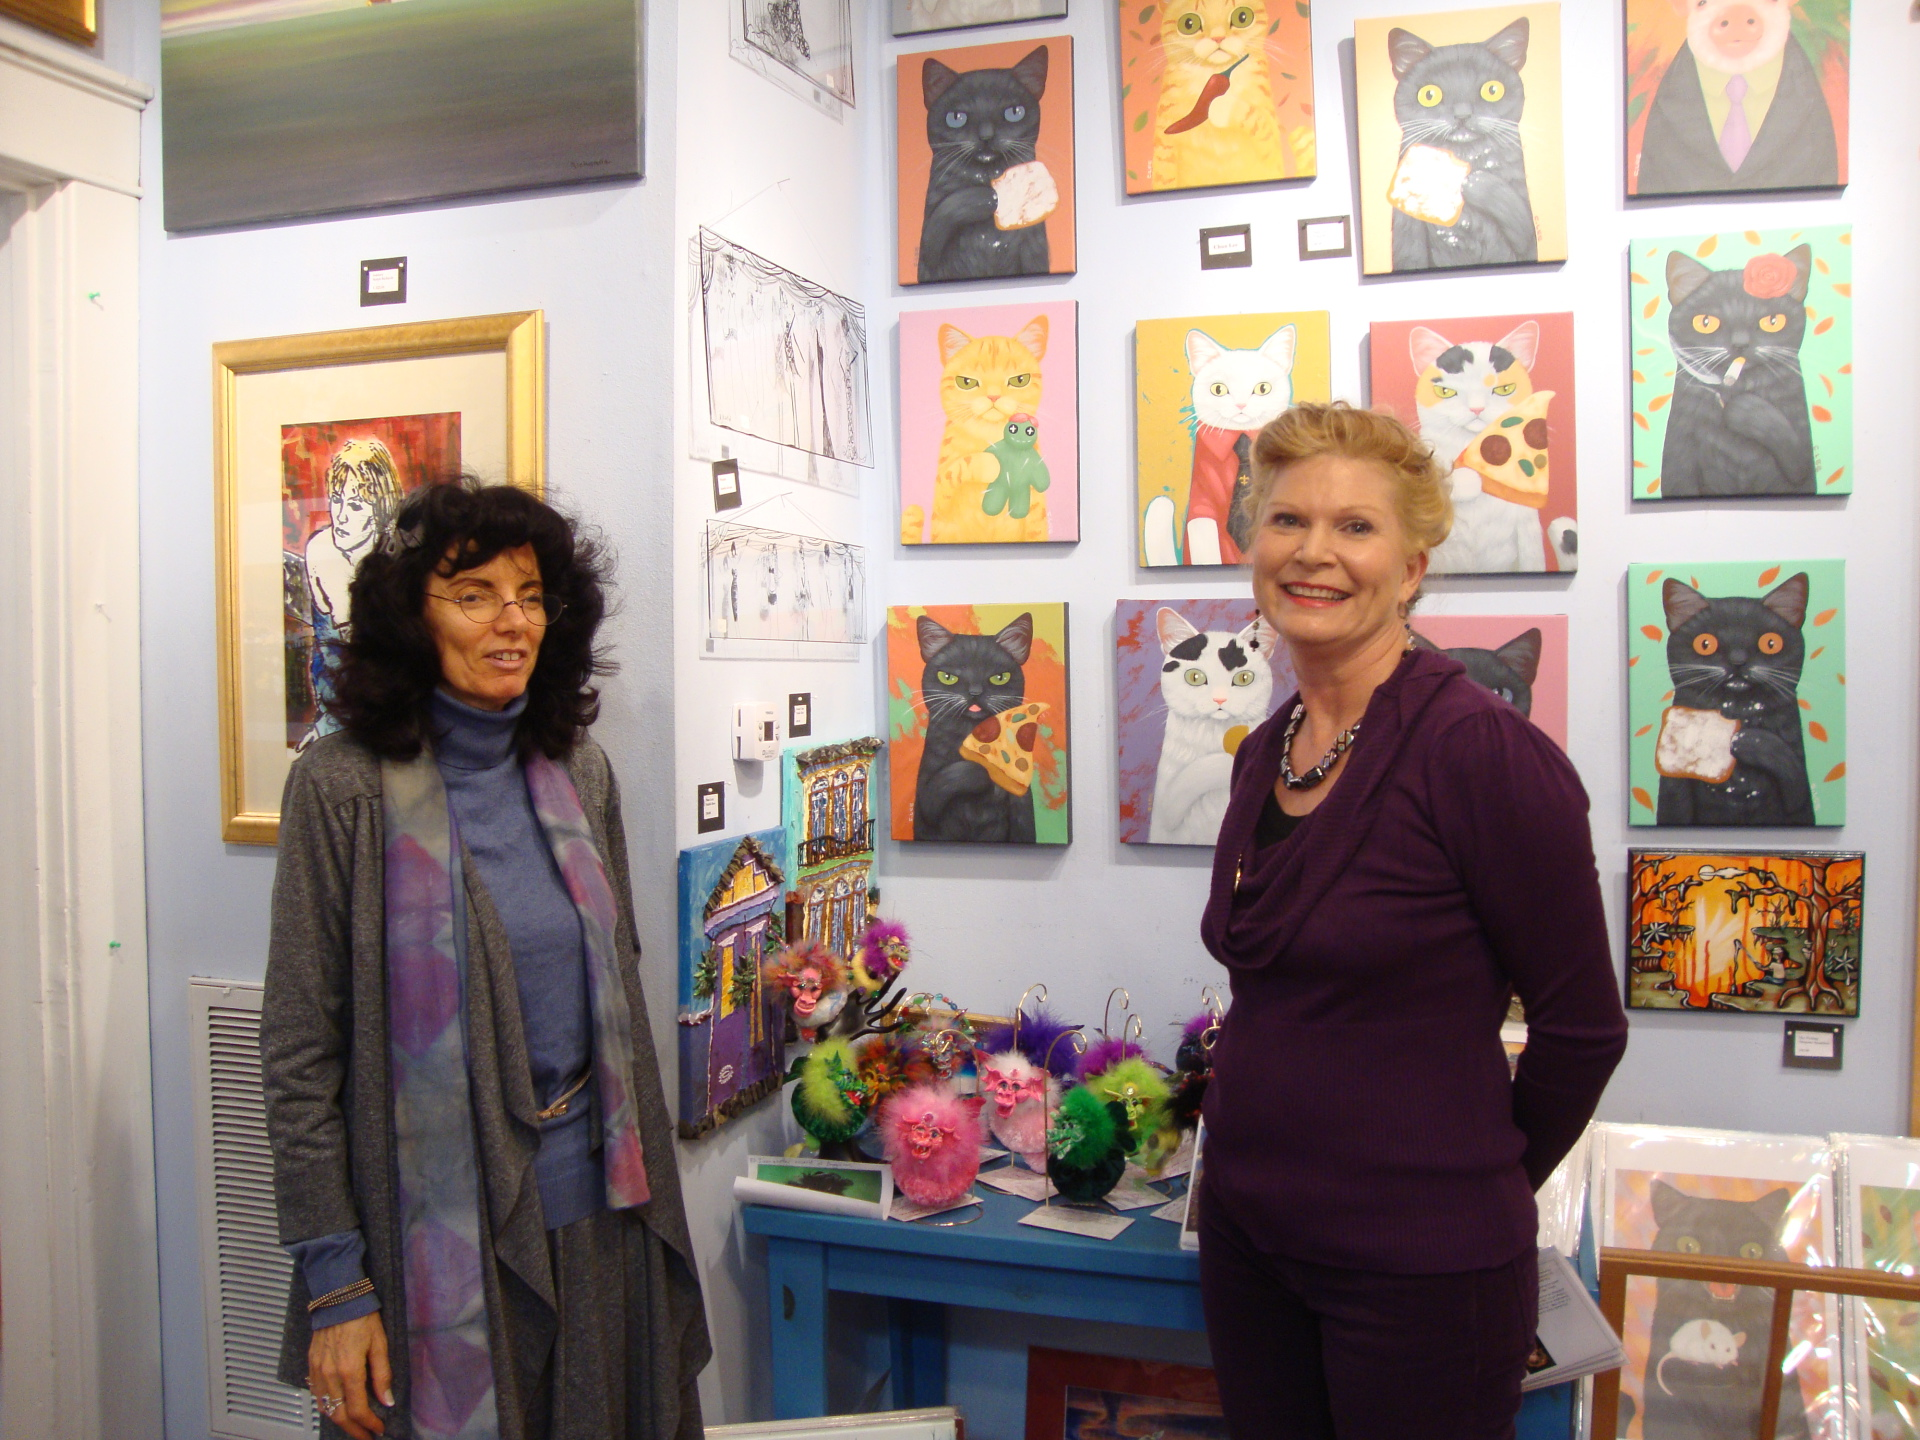 Elizabeth Shick at The Great Artists Collective in New Orleans Louisiana